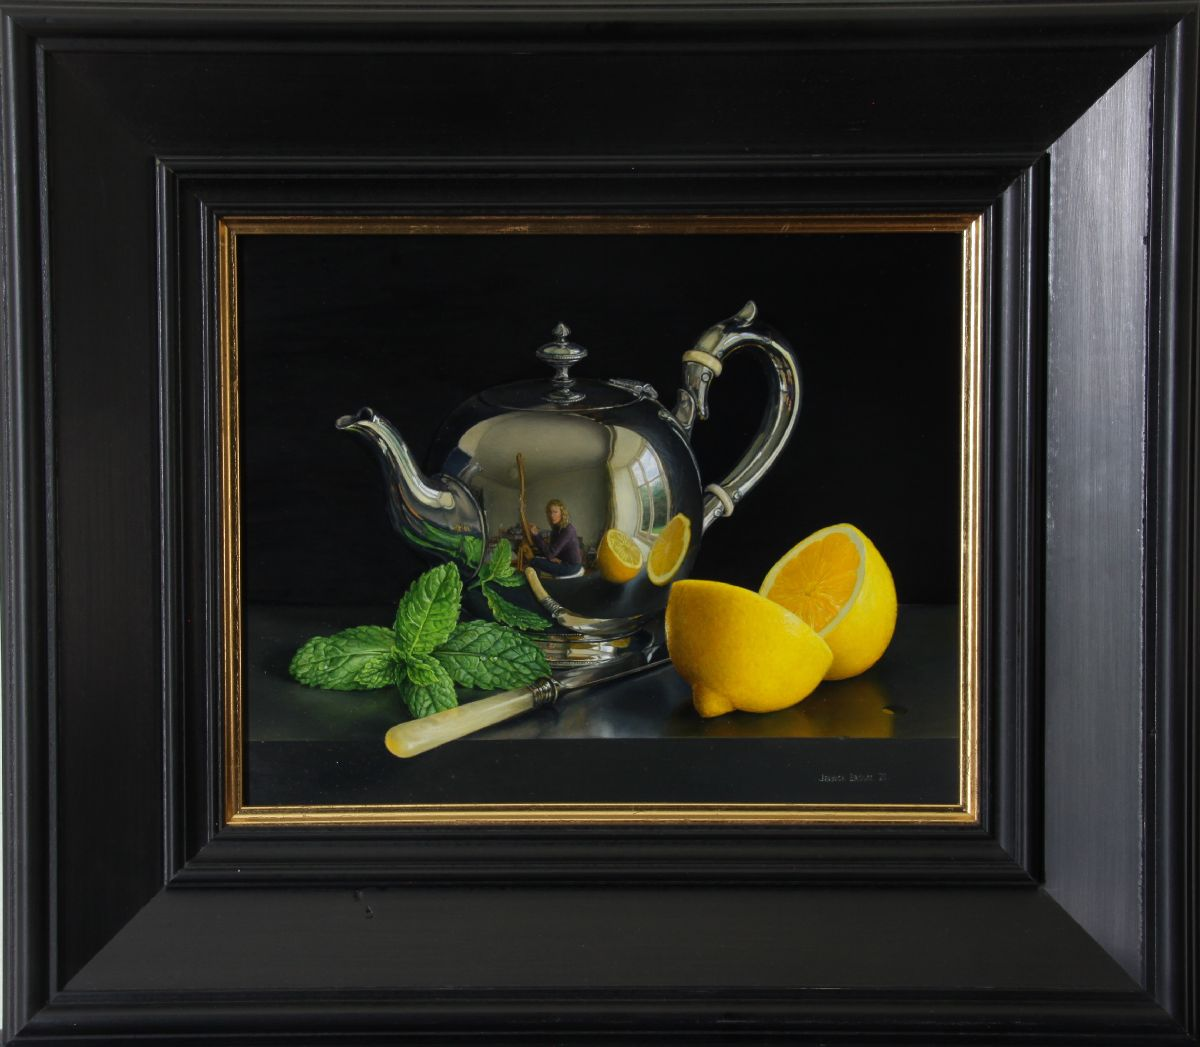 Still Life with Silver Teapot, Lemon and Mint by Jessica Brown